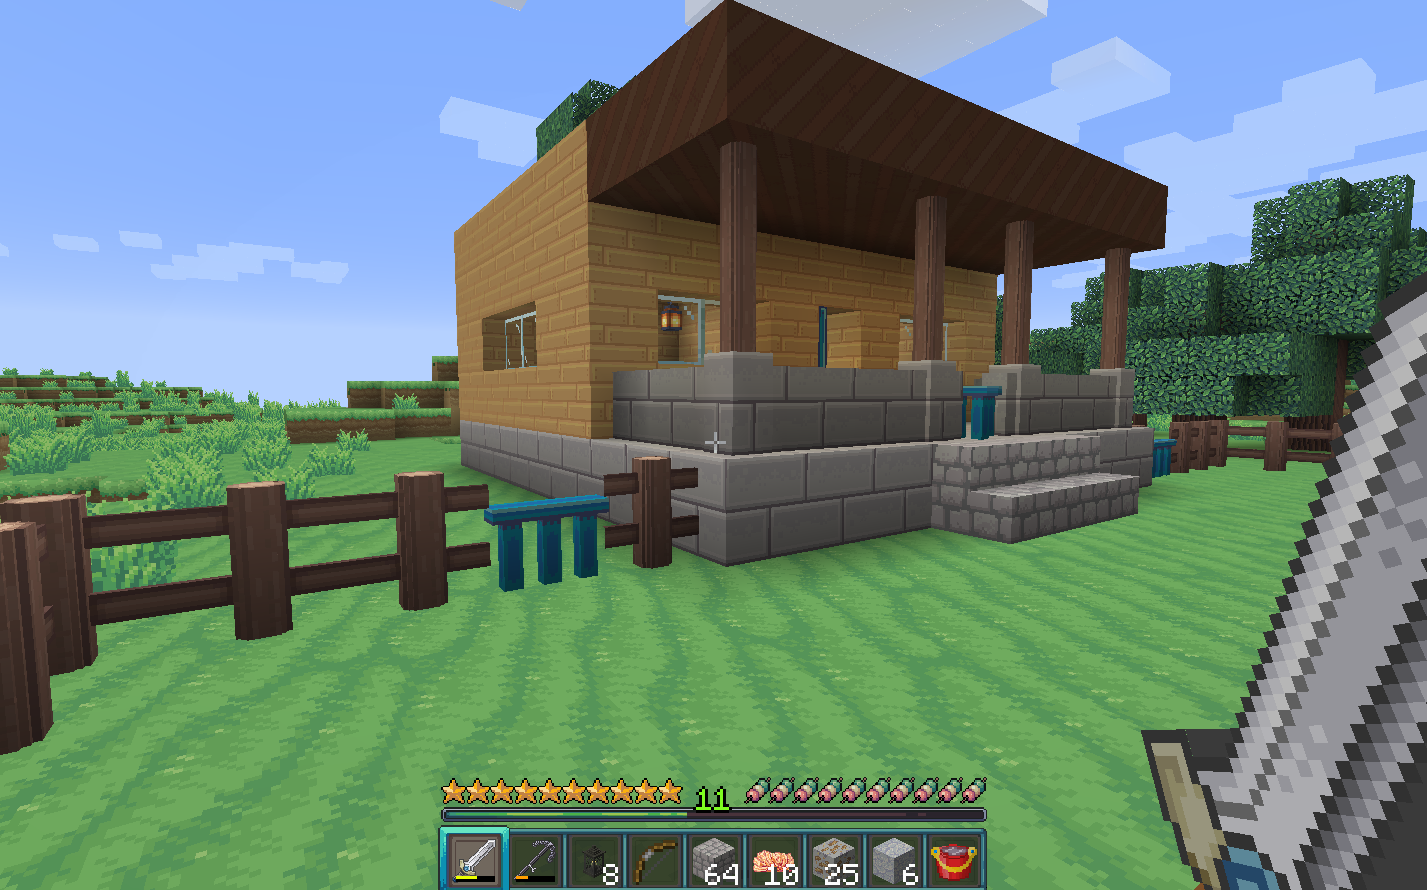 A view of a minecraft house with the annahstas Resource Pack textures